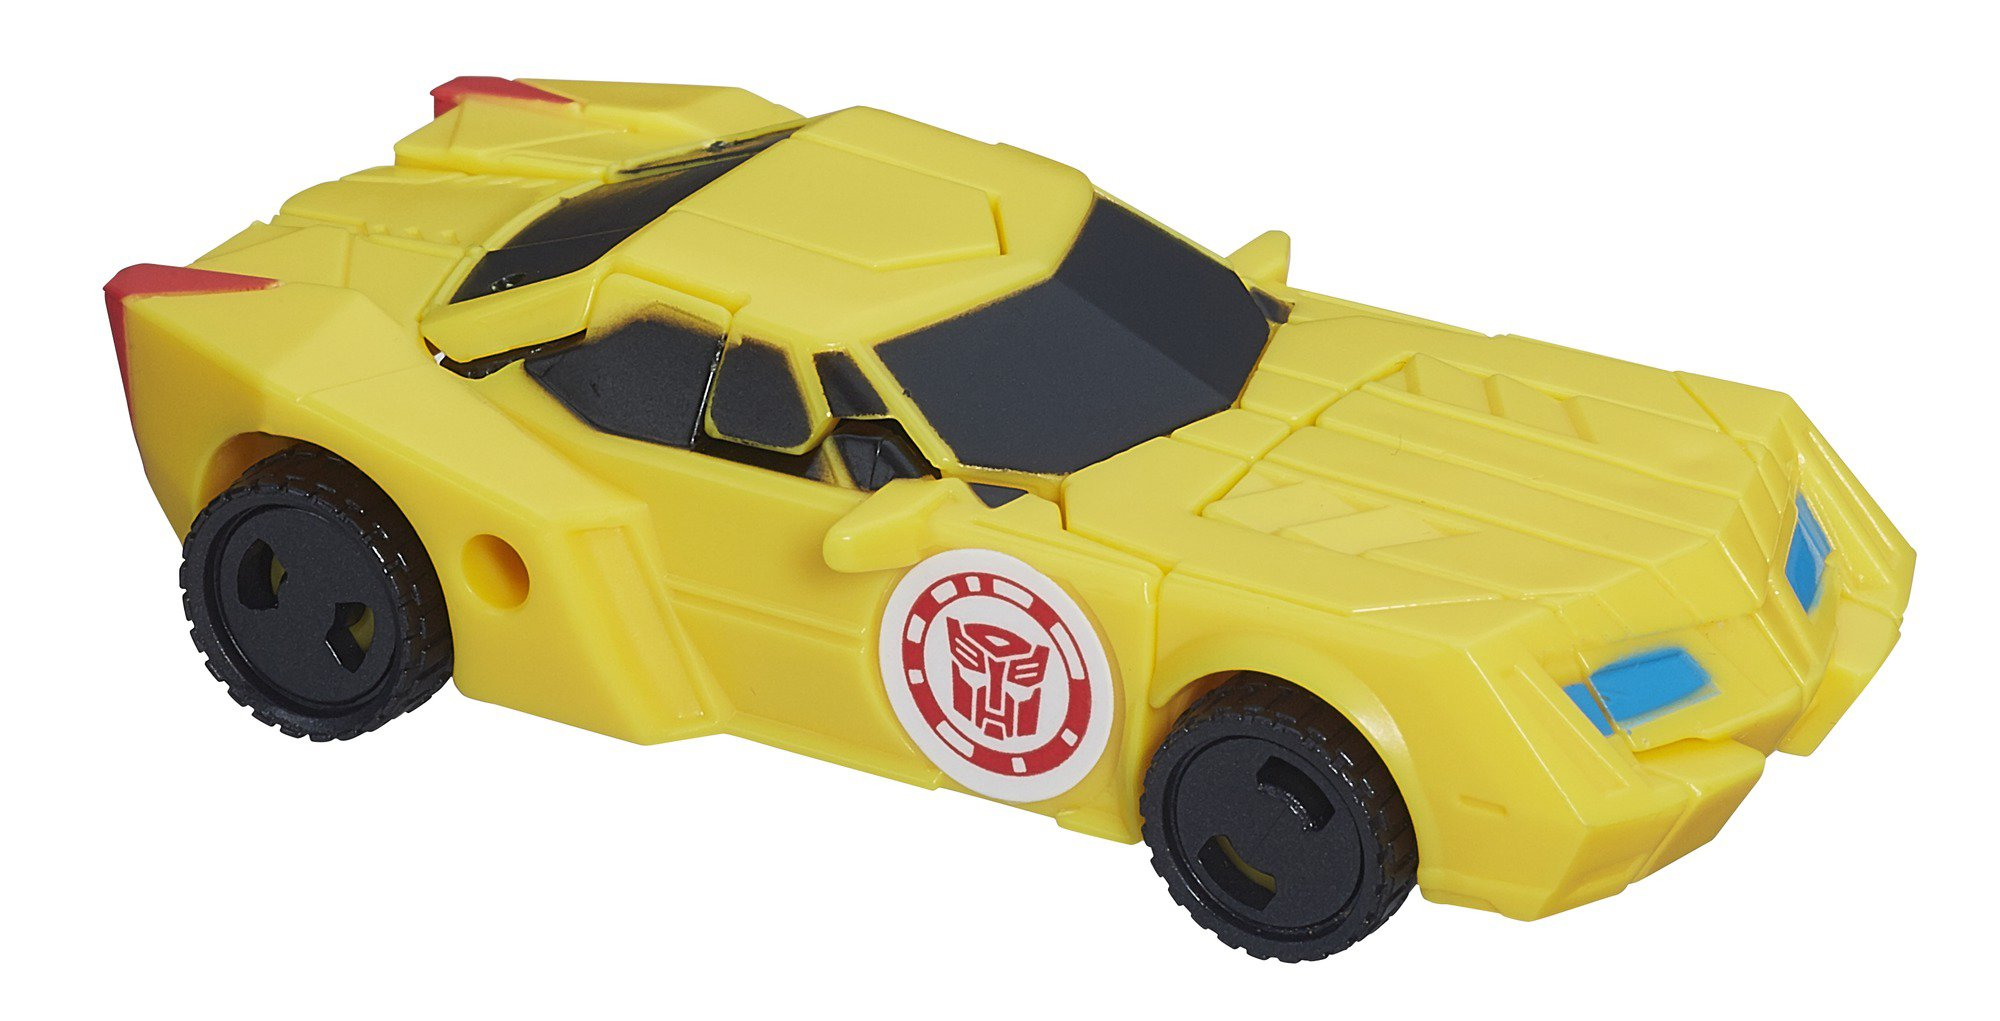 Transformers Robots in Disguise Legion Class Bumblebee Figure by Transformers (Image #3)